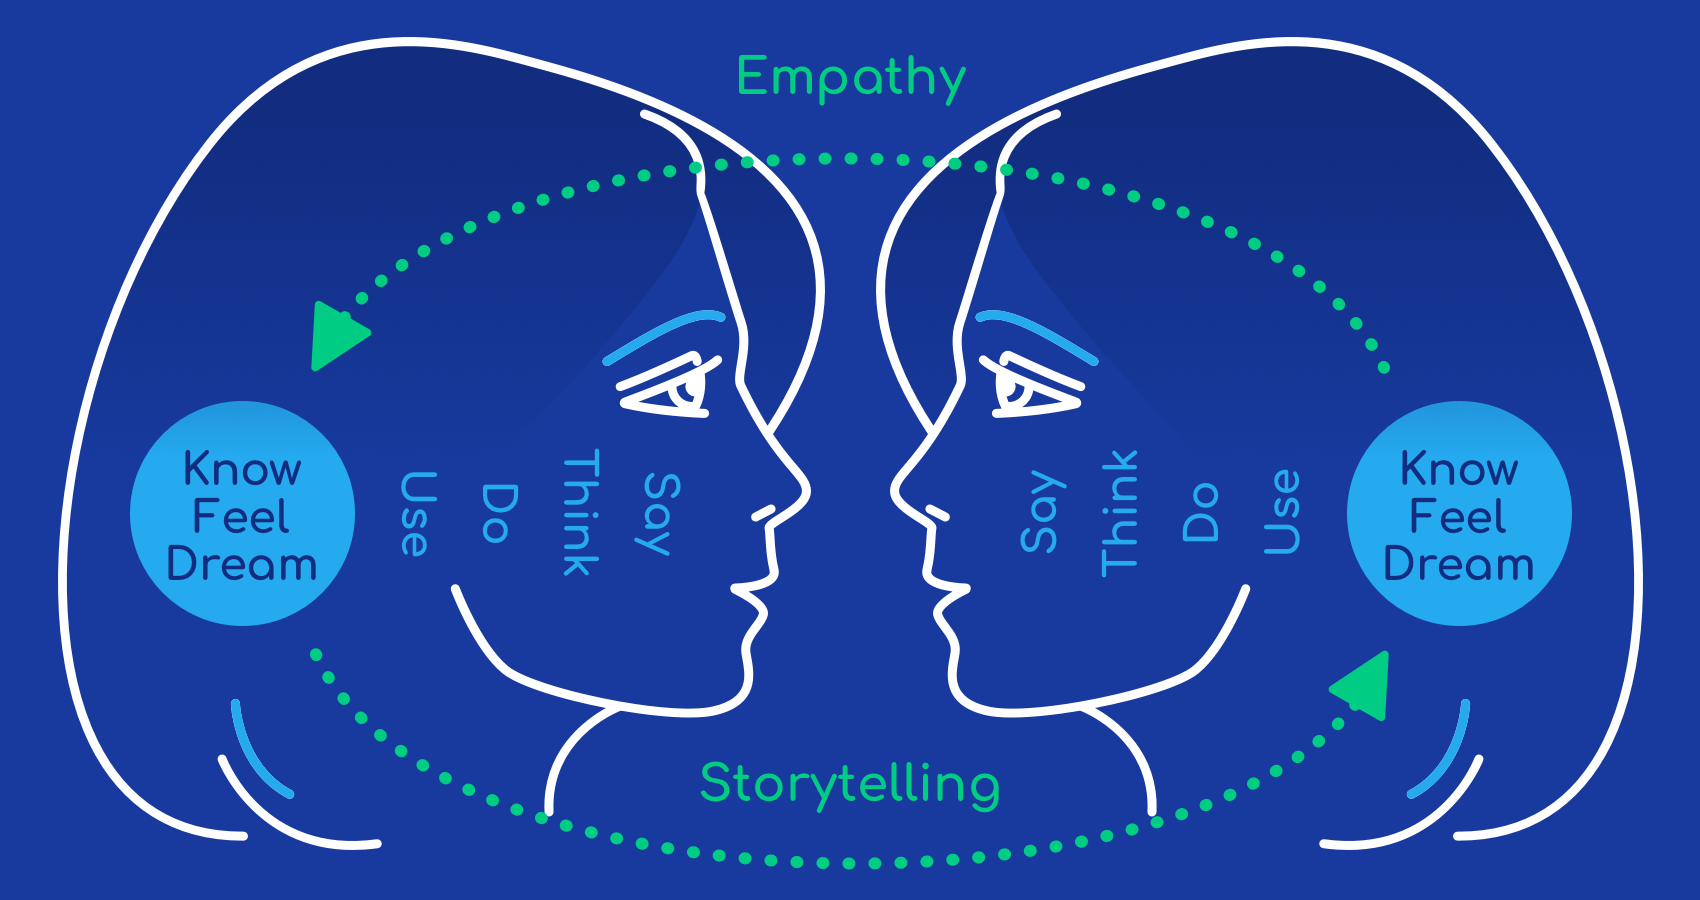 Storytelling is another powerful human element of the future of UX design.